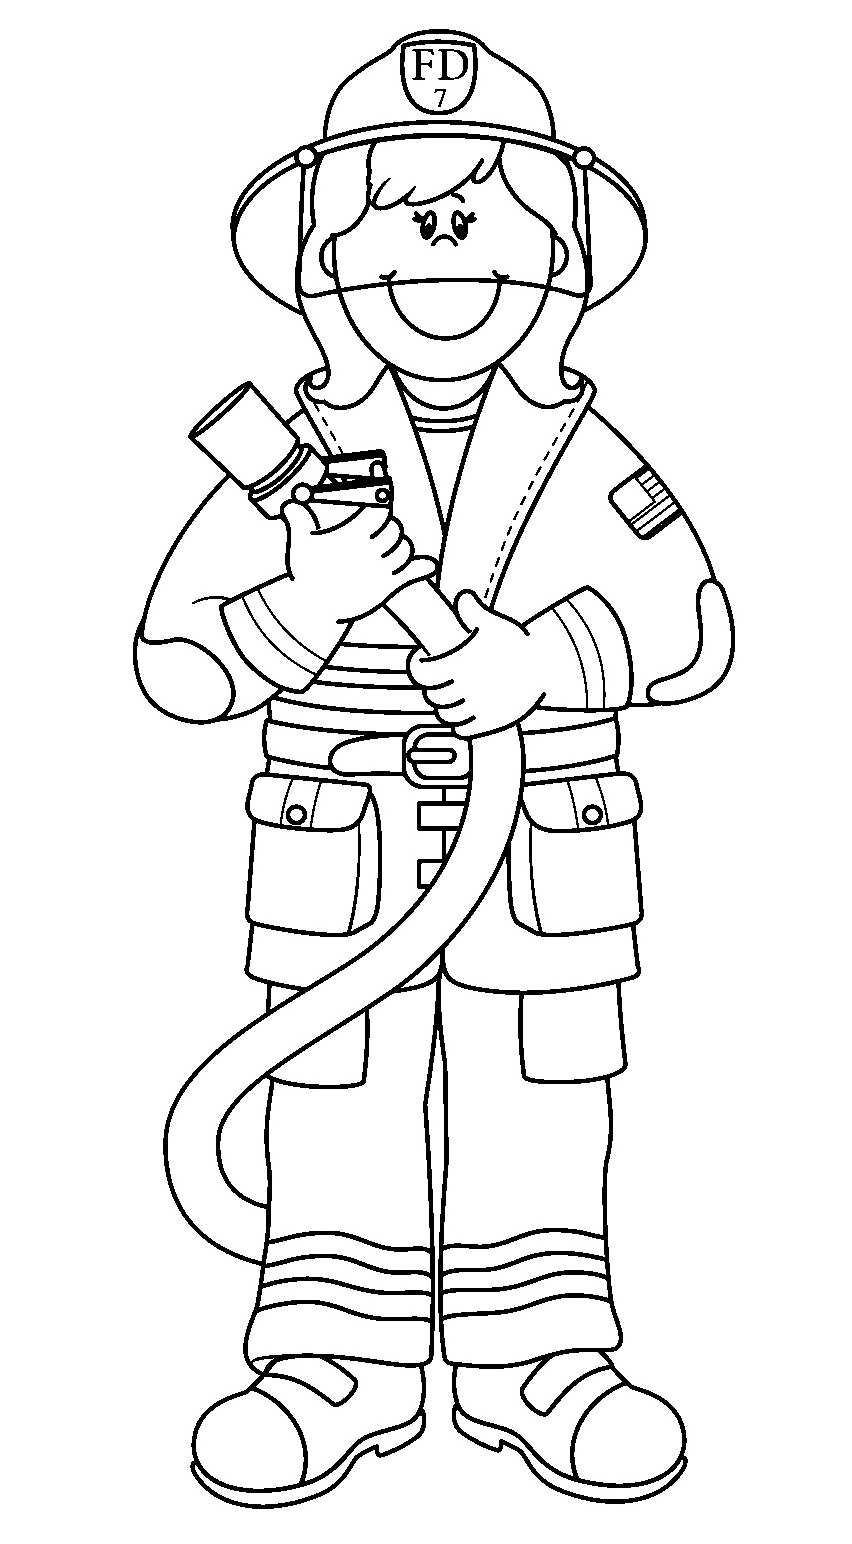 Firefighter coloring pages to download and print for free